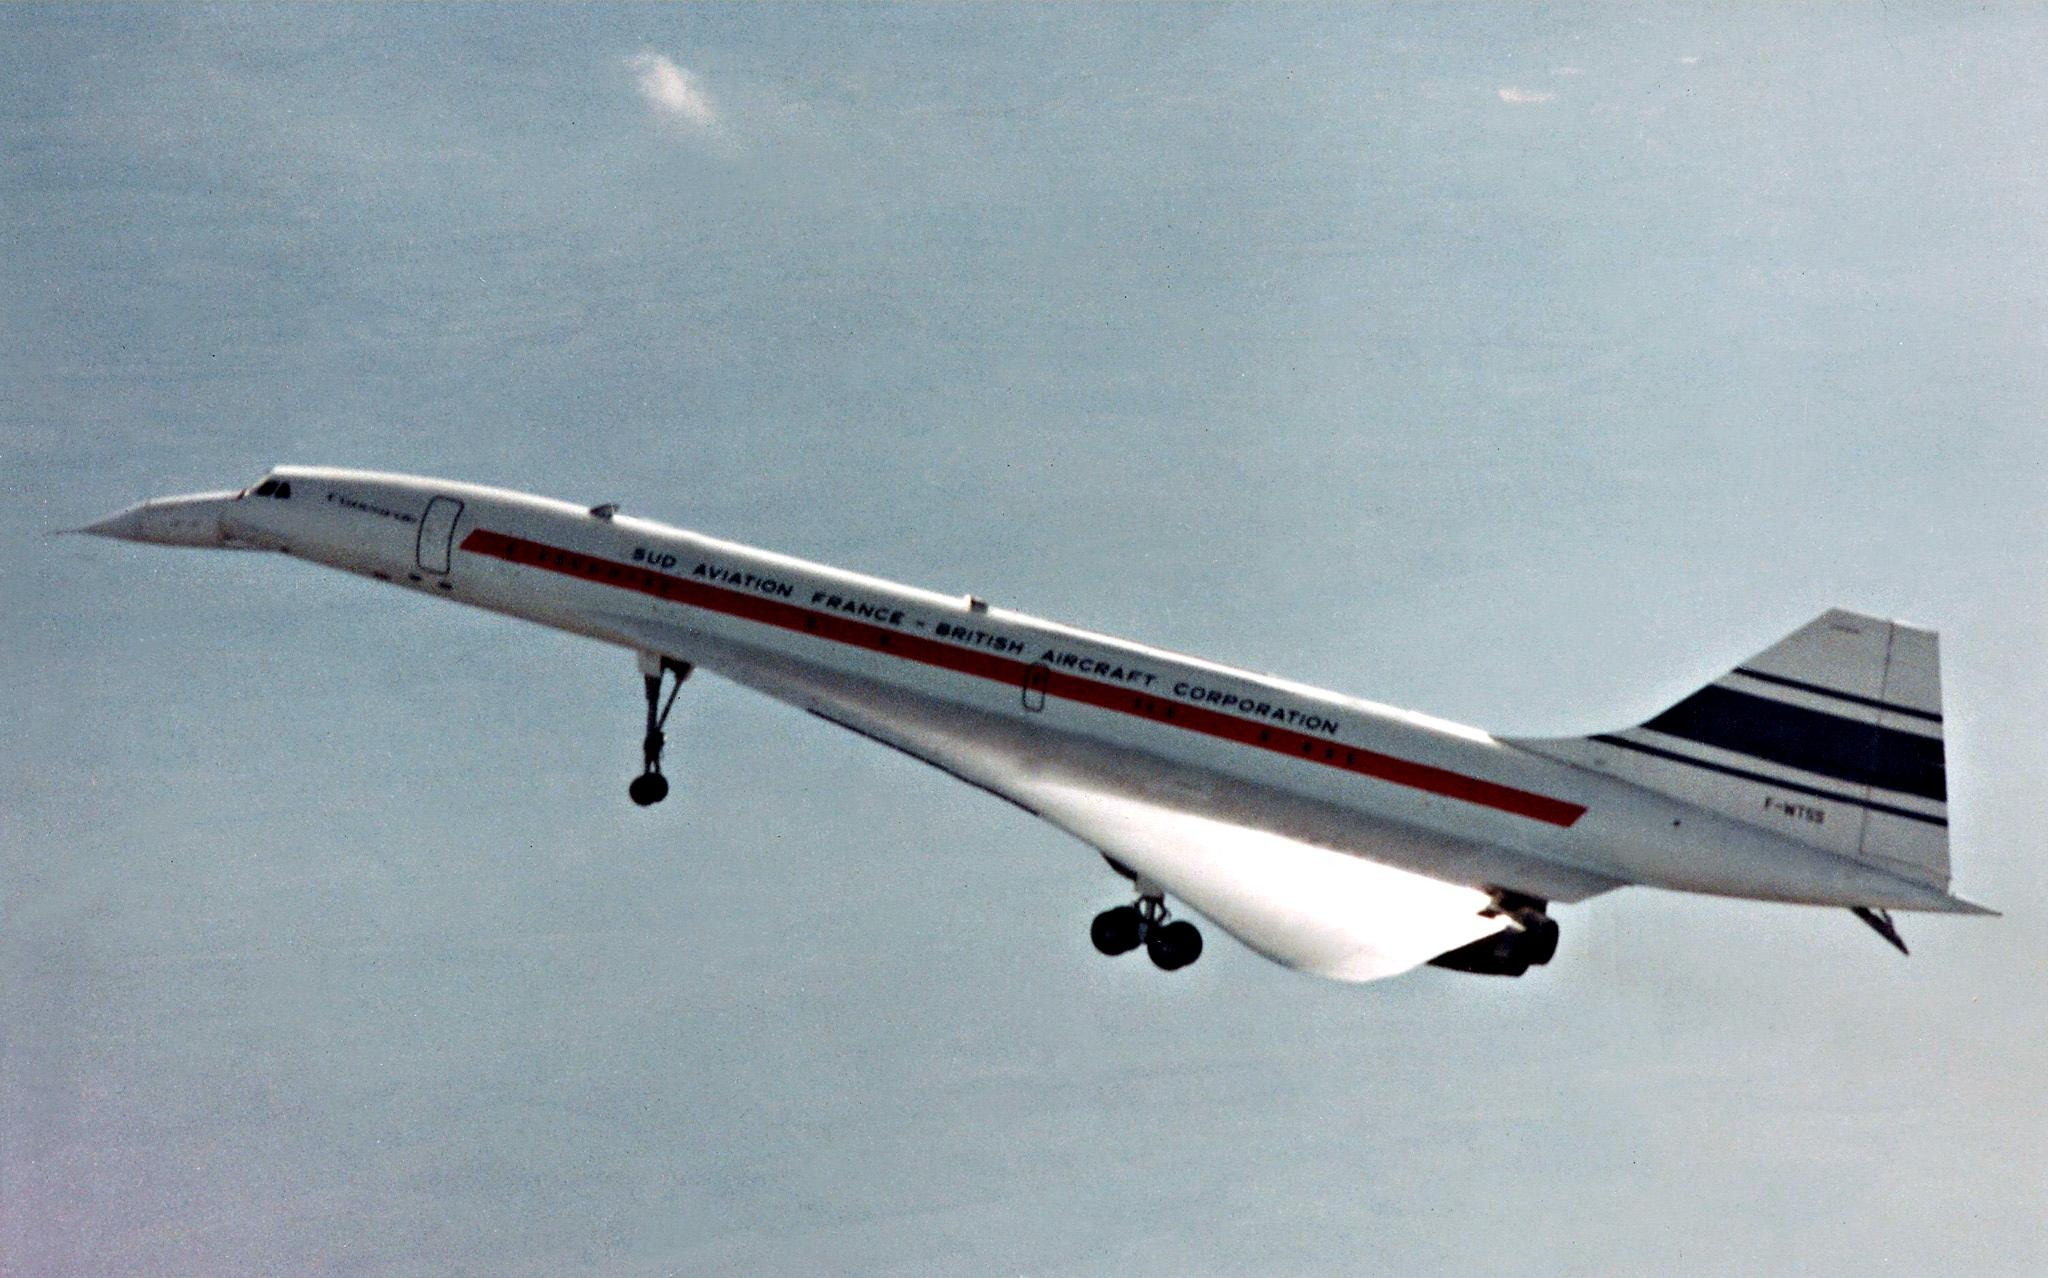 Flying on the Concorde: What was it really like? | CNN Travel on airplane house ghana, airplane house costa rica, airplane house interior, airplane house oregon,